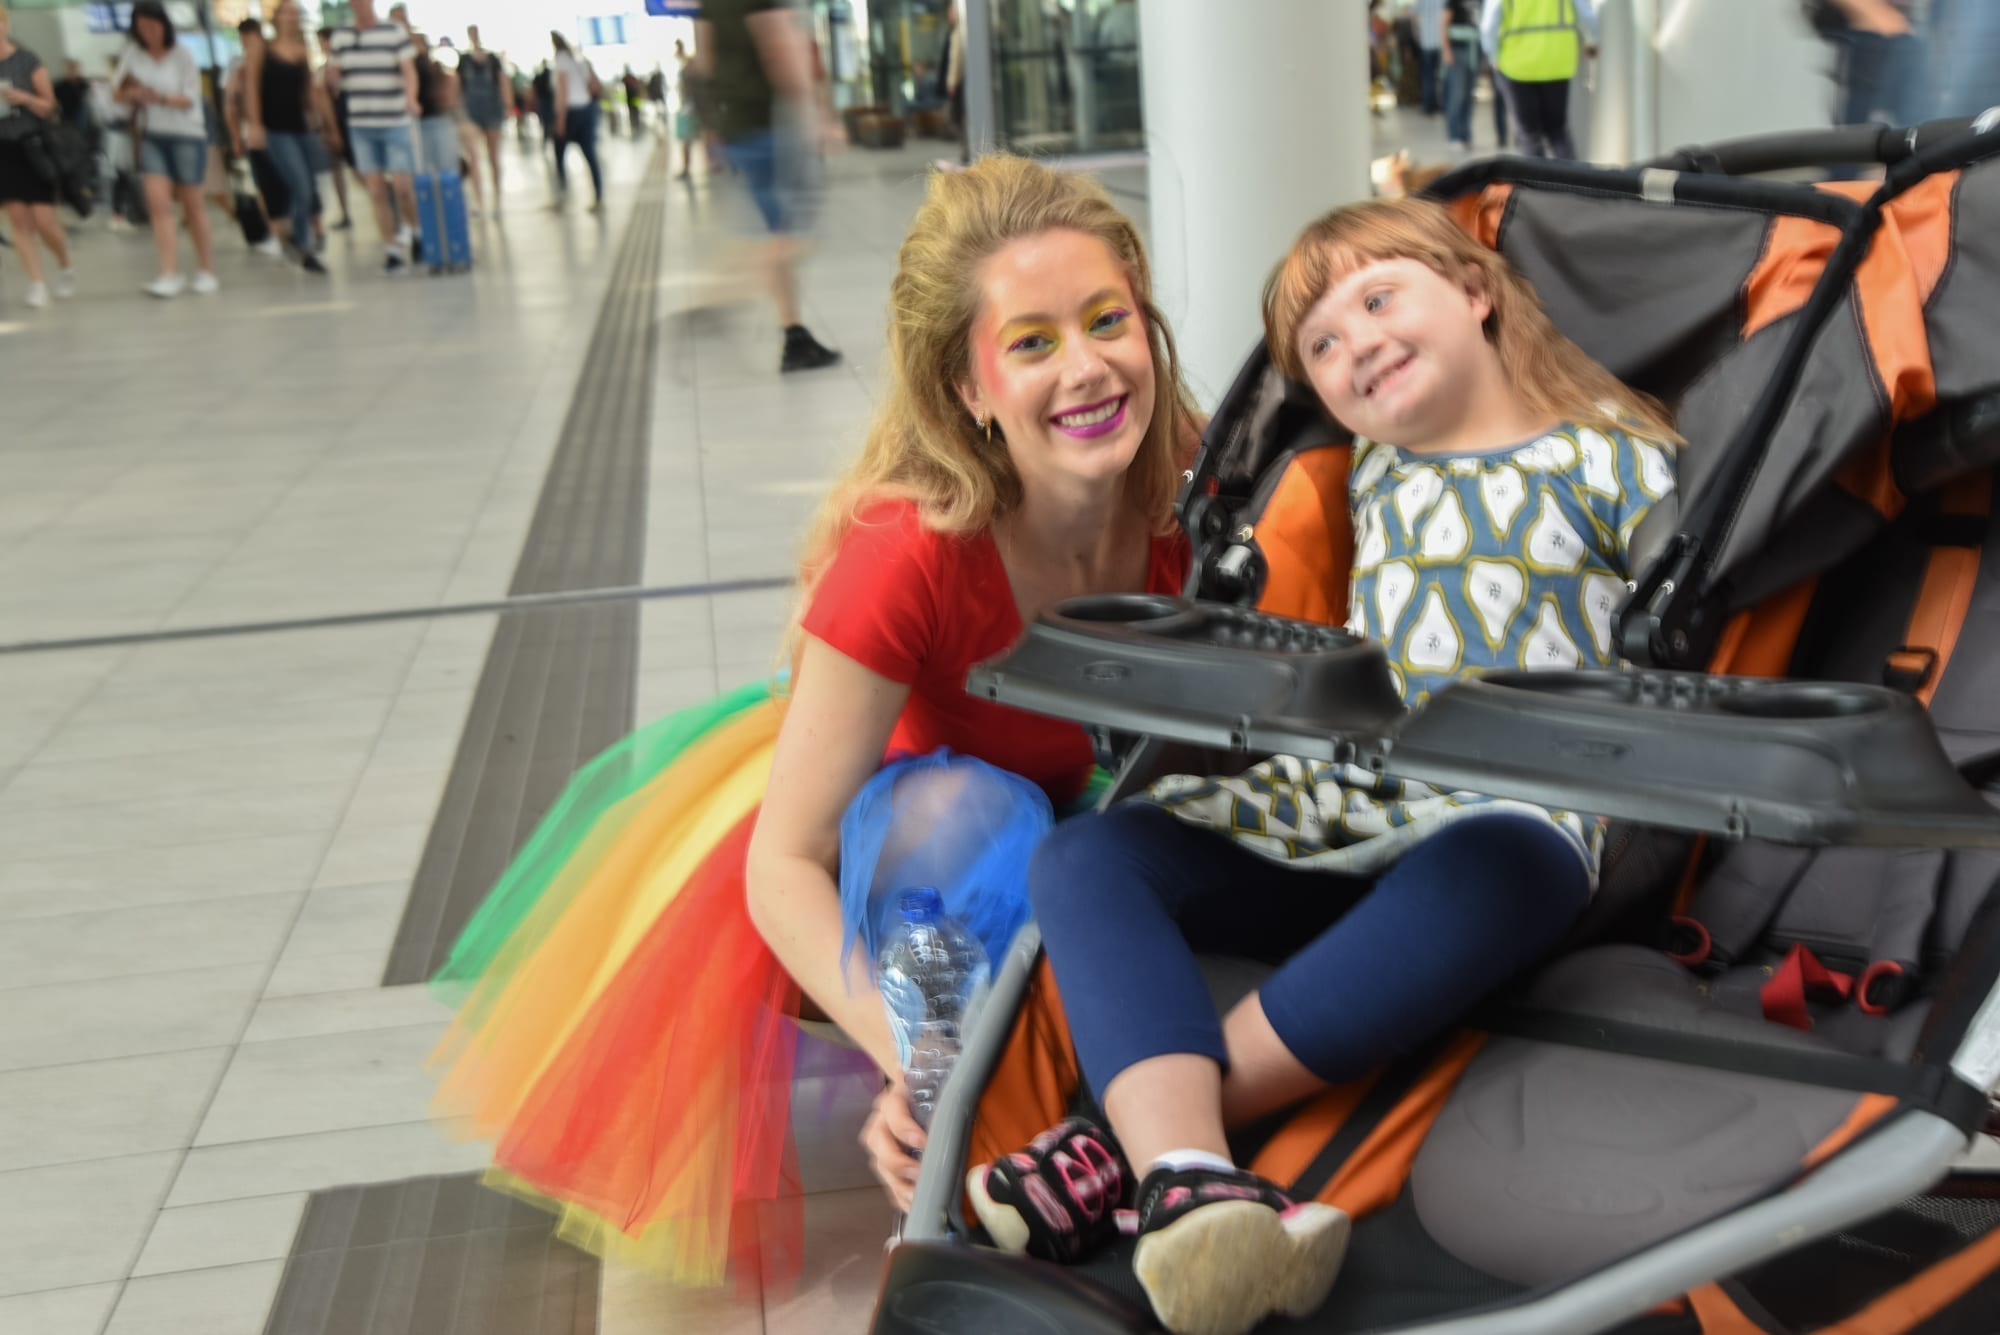 lady in rainbow dress next to a child in a stroller. both are smiling